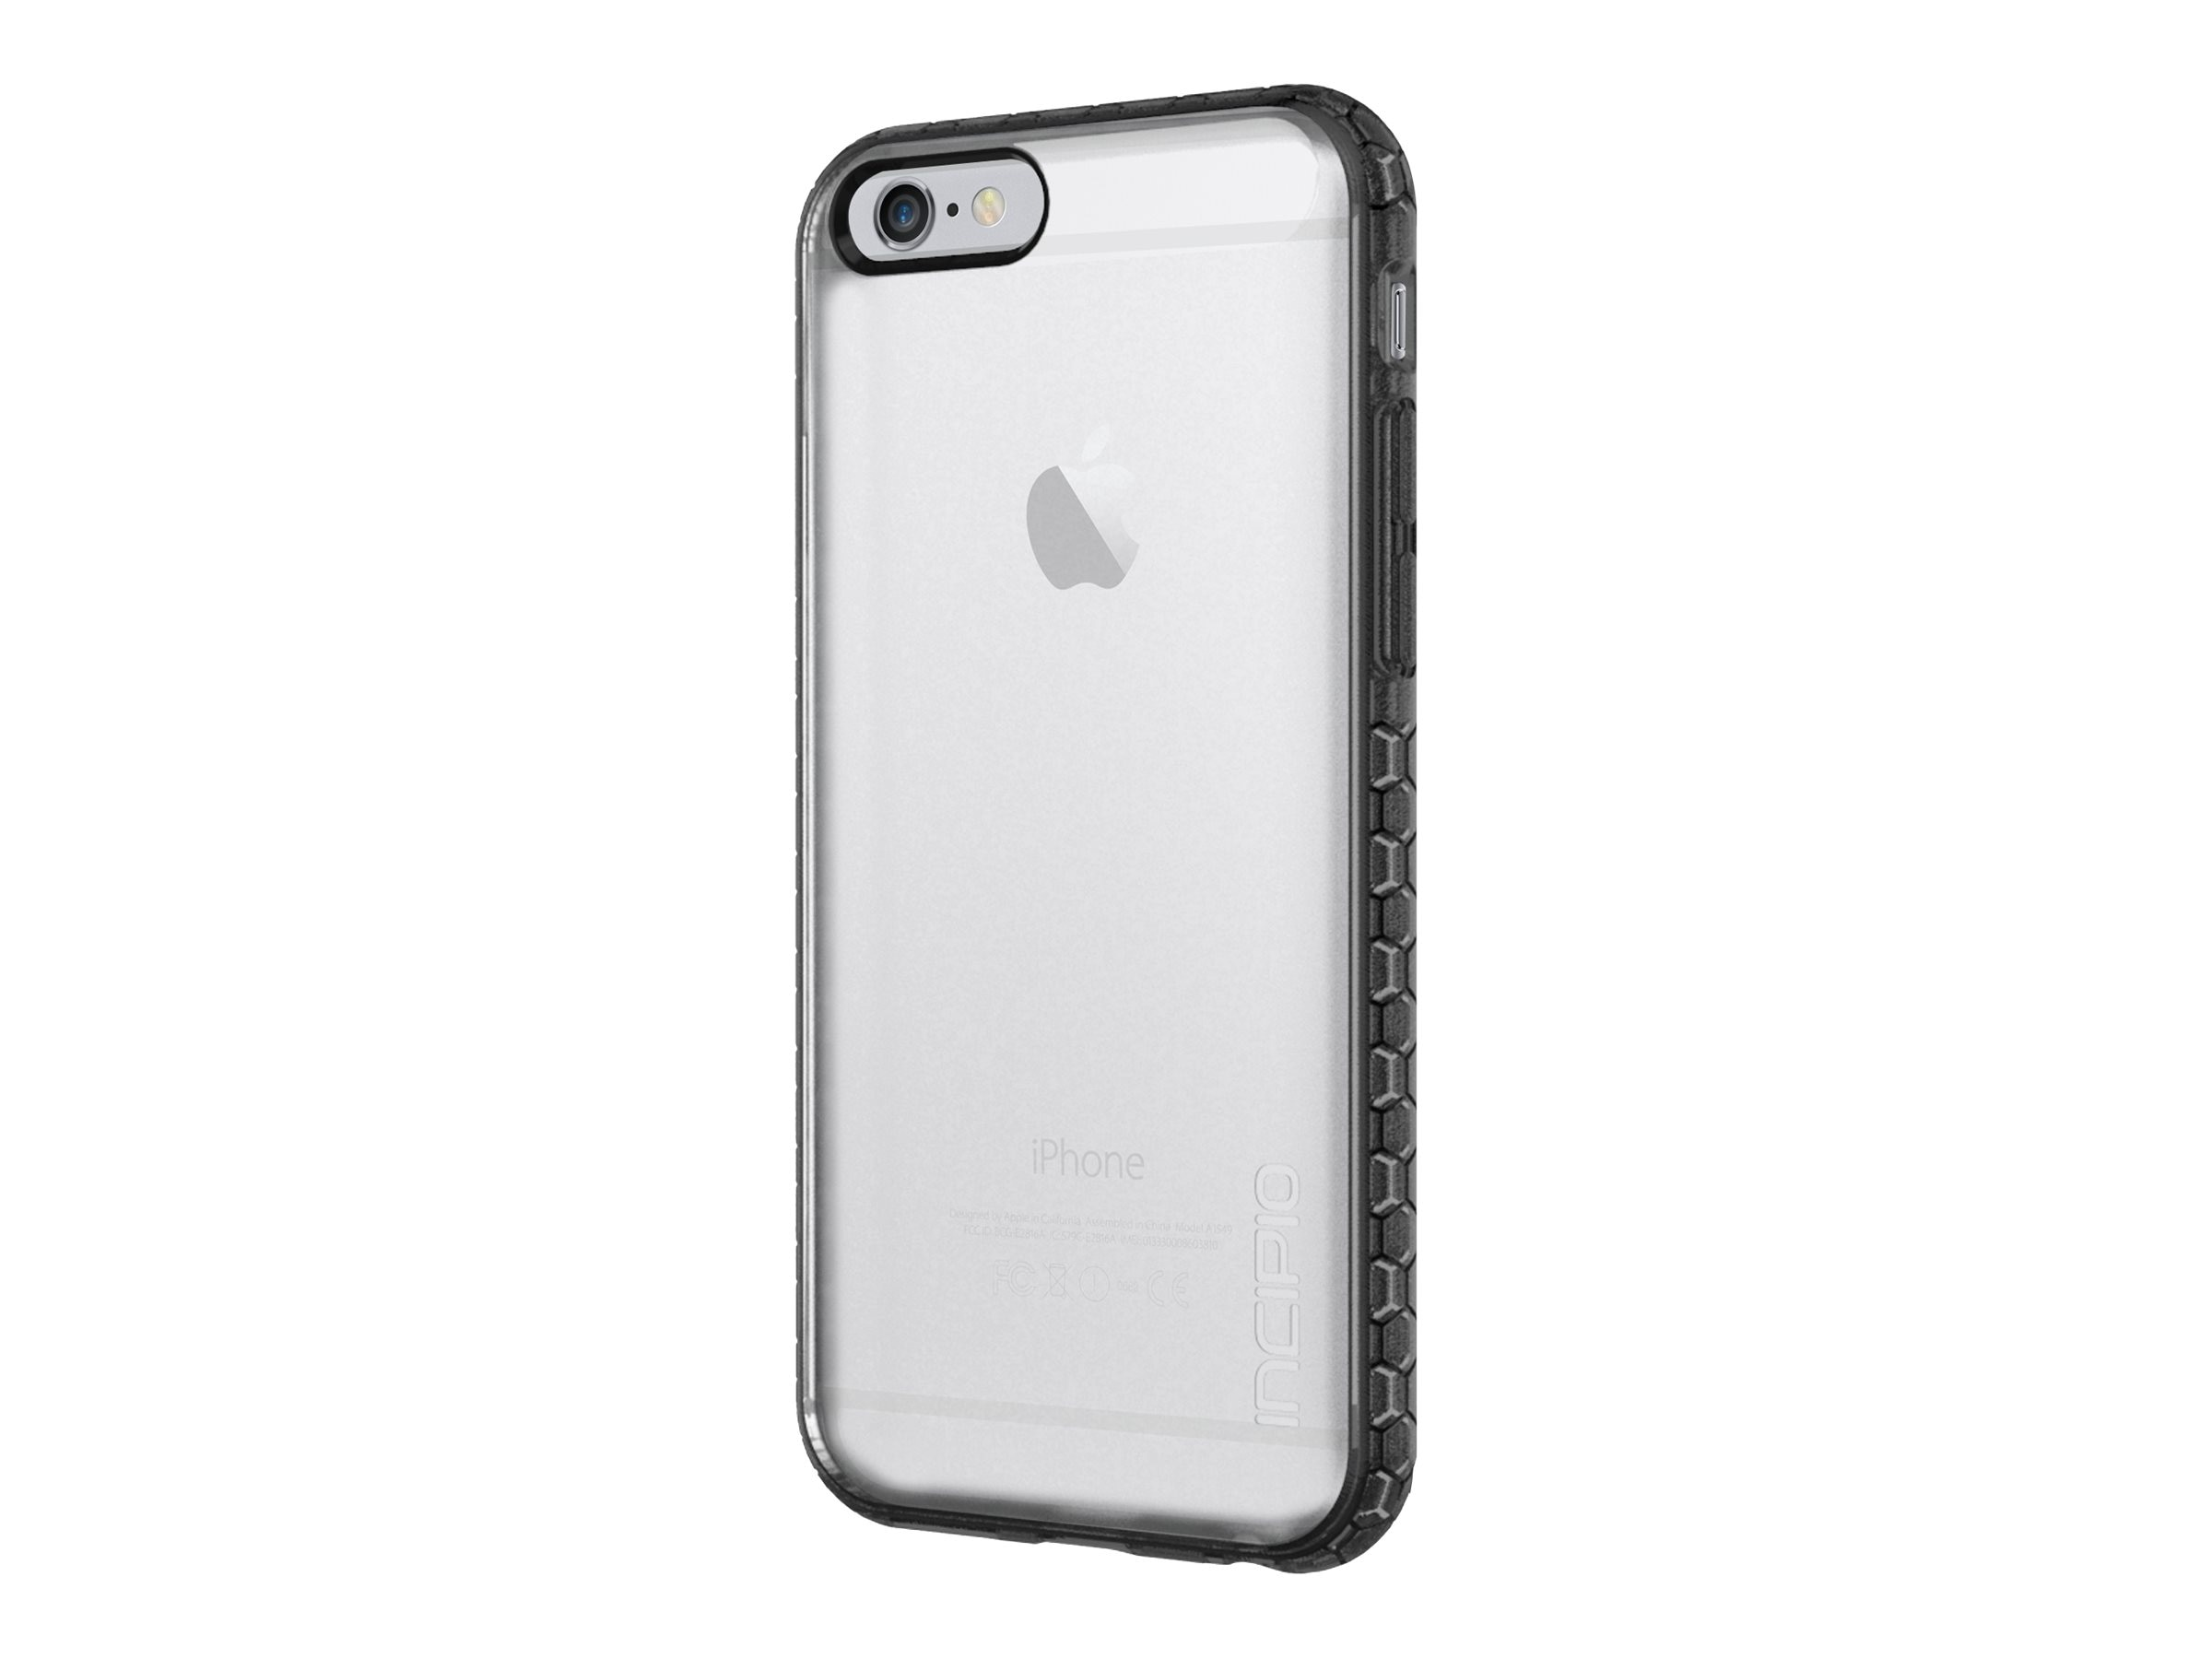 Incipio Octane Co-Molded Impact Absorbing Case for iPhone 6 6s, Frost Black, IPH-1190-FRSTBLK